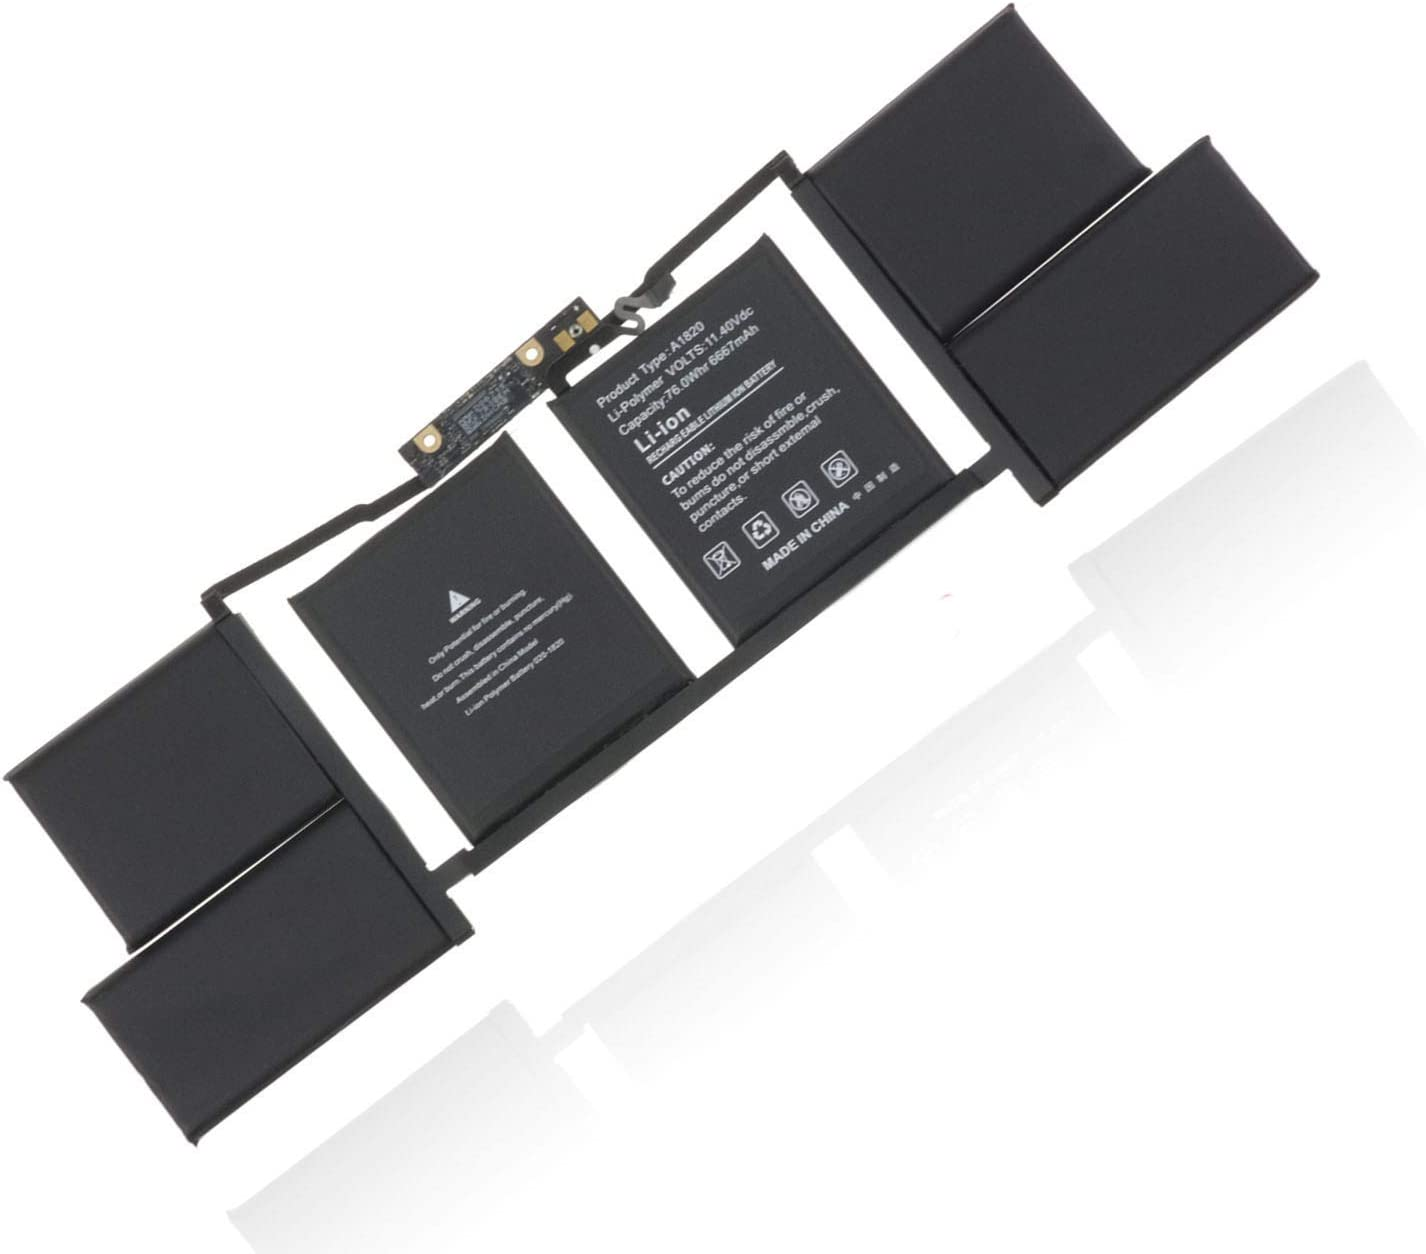 A1820 Laptop Battery Replacement for Apple MacBook Pro 15